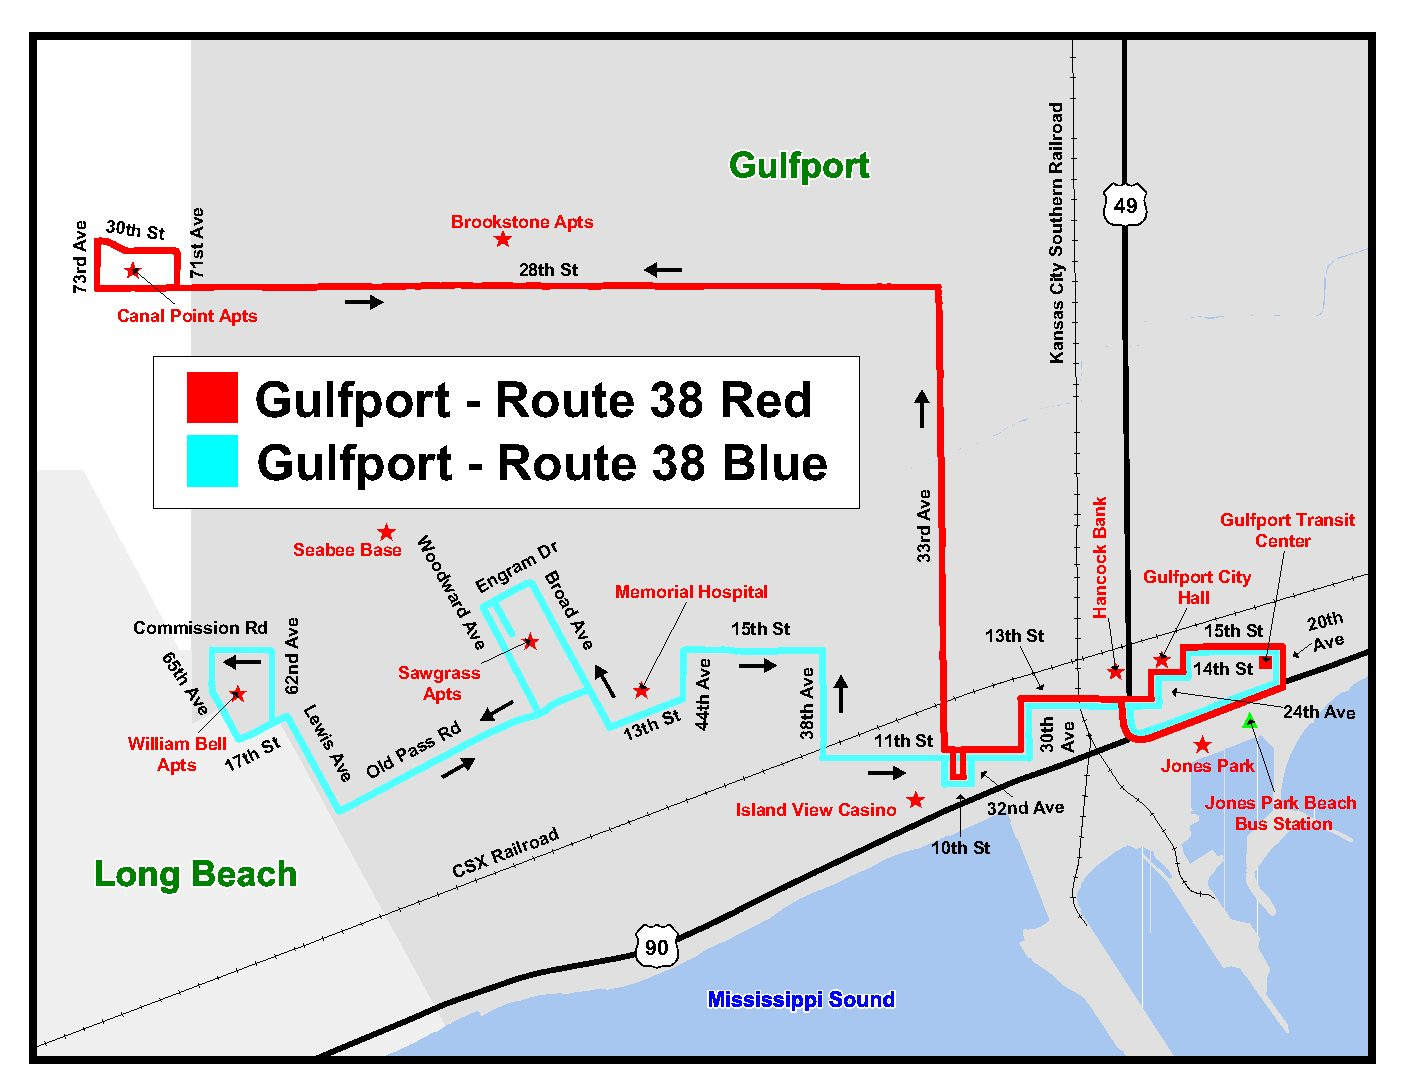 Gulfport - Route 38